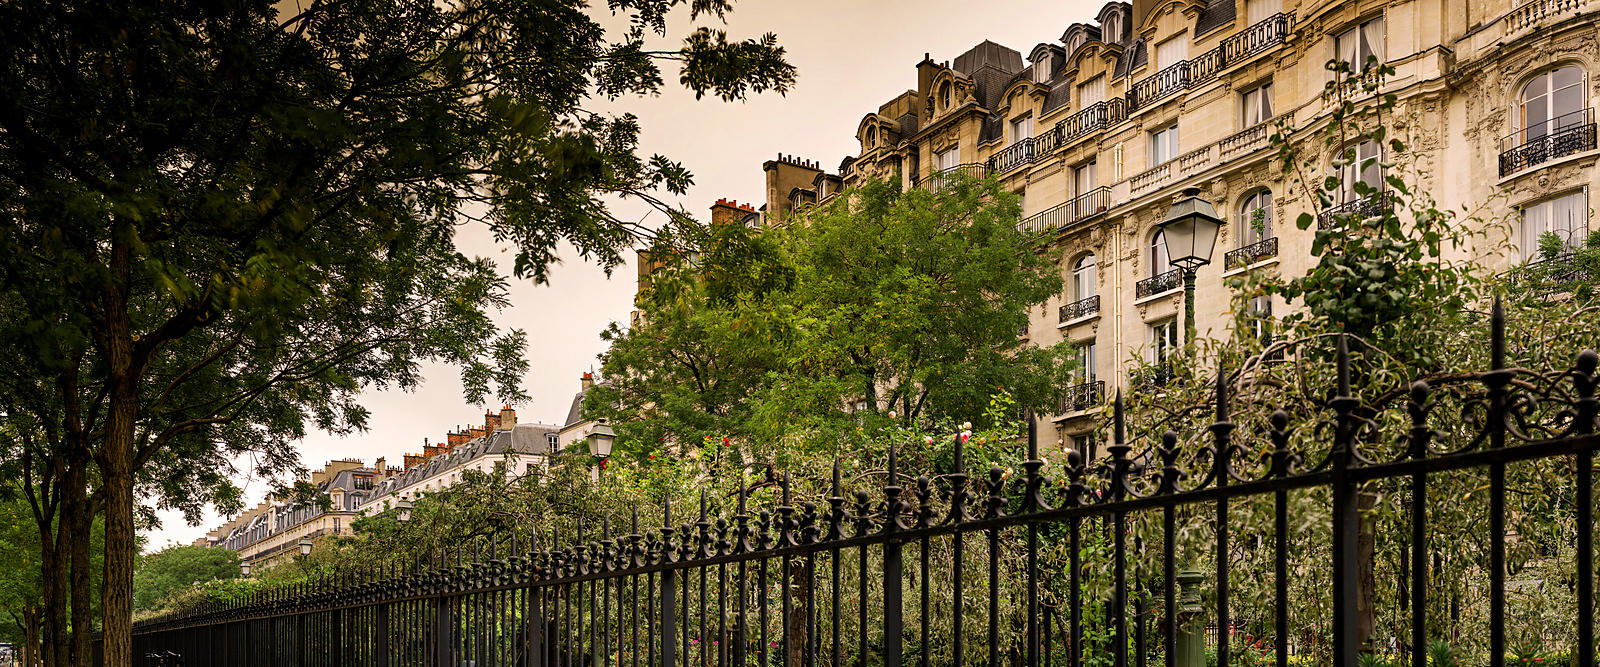 Buildings facades in the 17th district of Paris